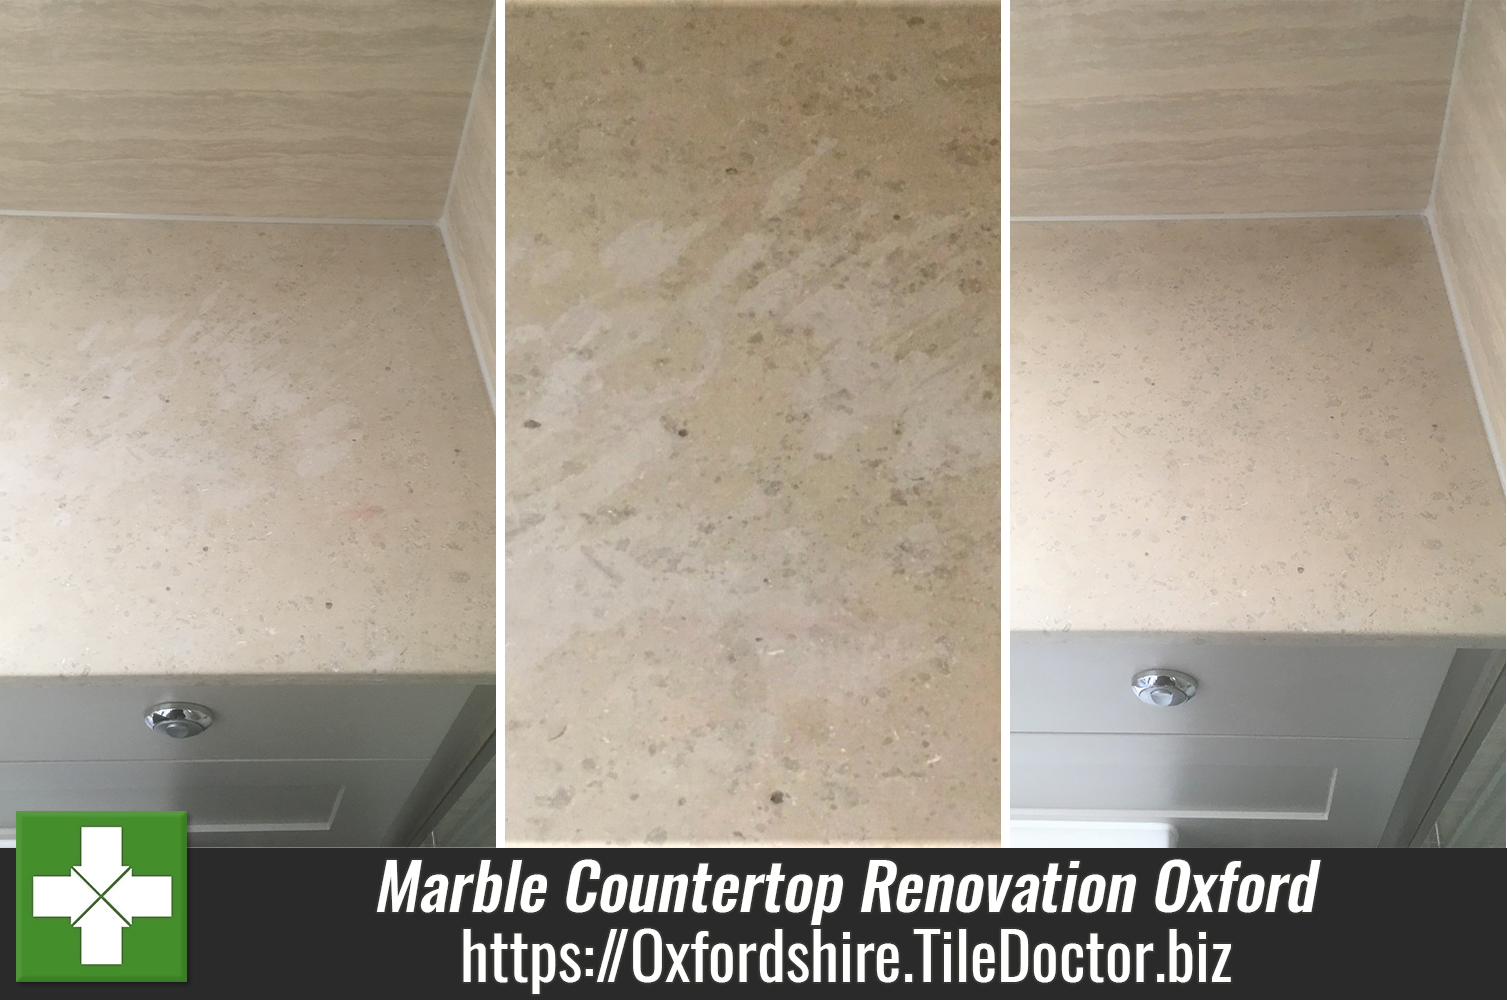 Restoring a Damaged Marble Vanity Countertop in Oxford